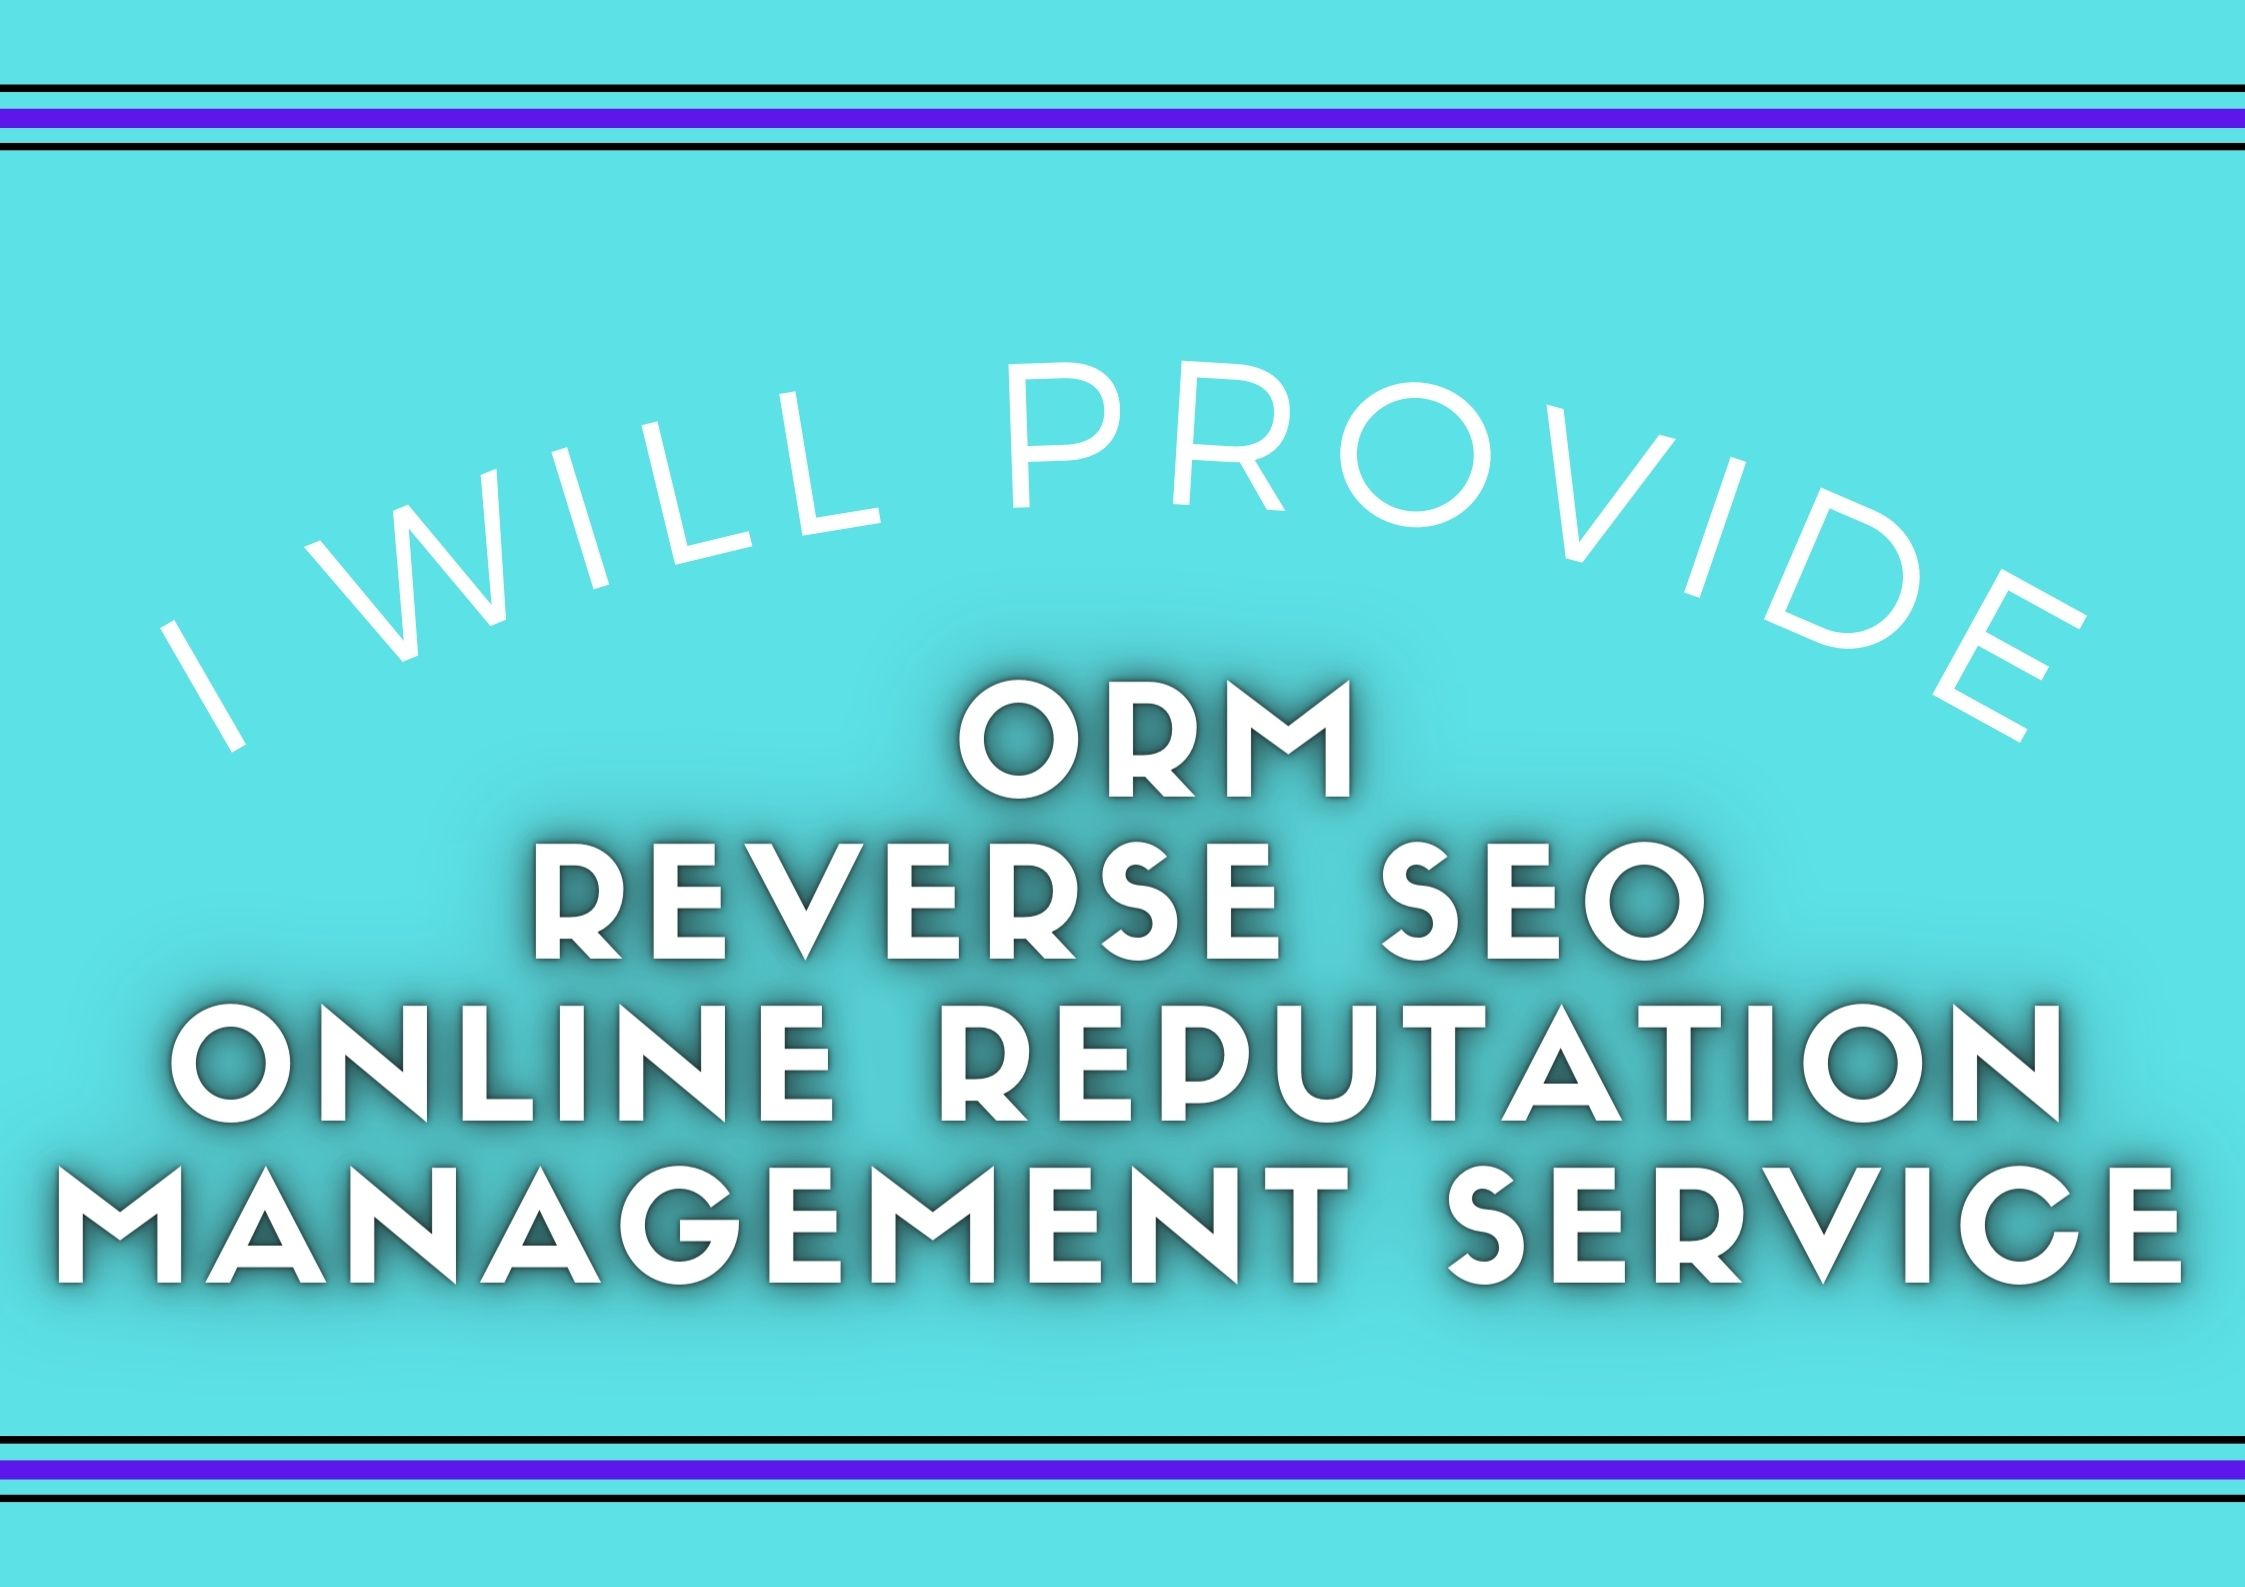 I will orm,  reverse seo,  online reputation management service